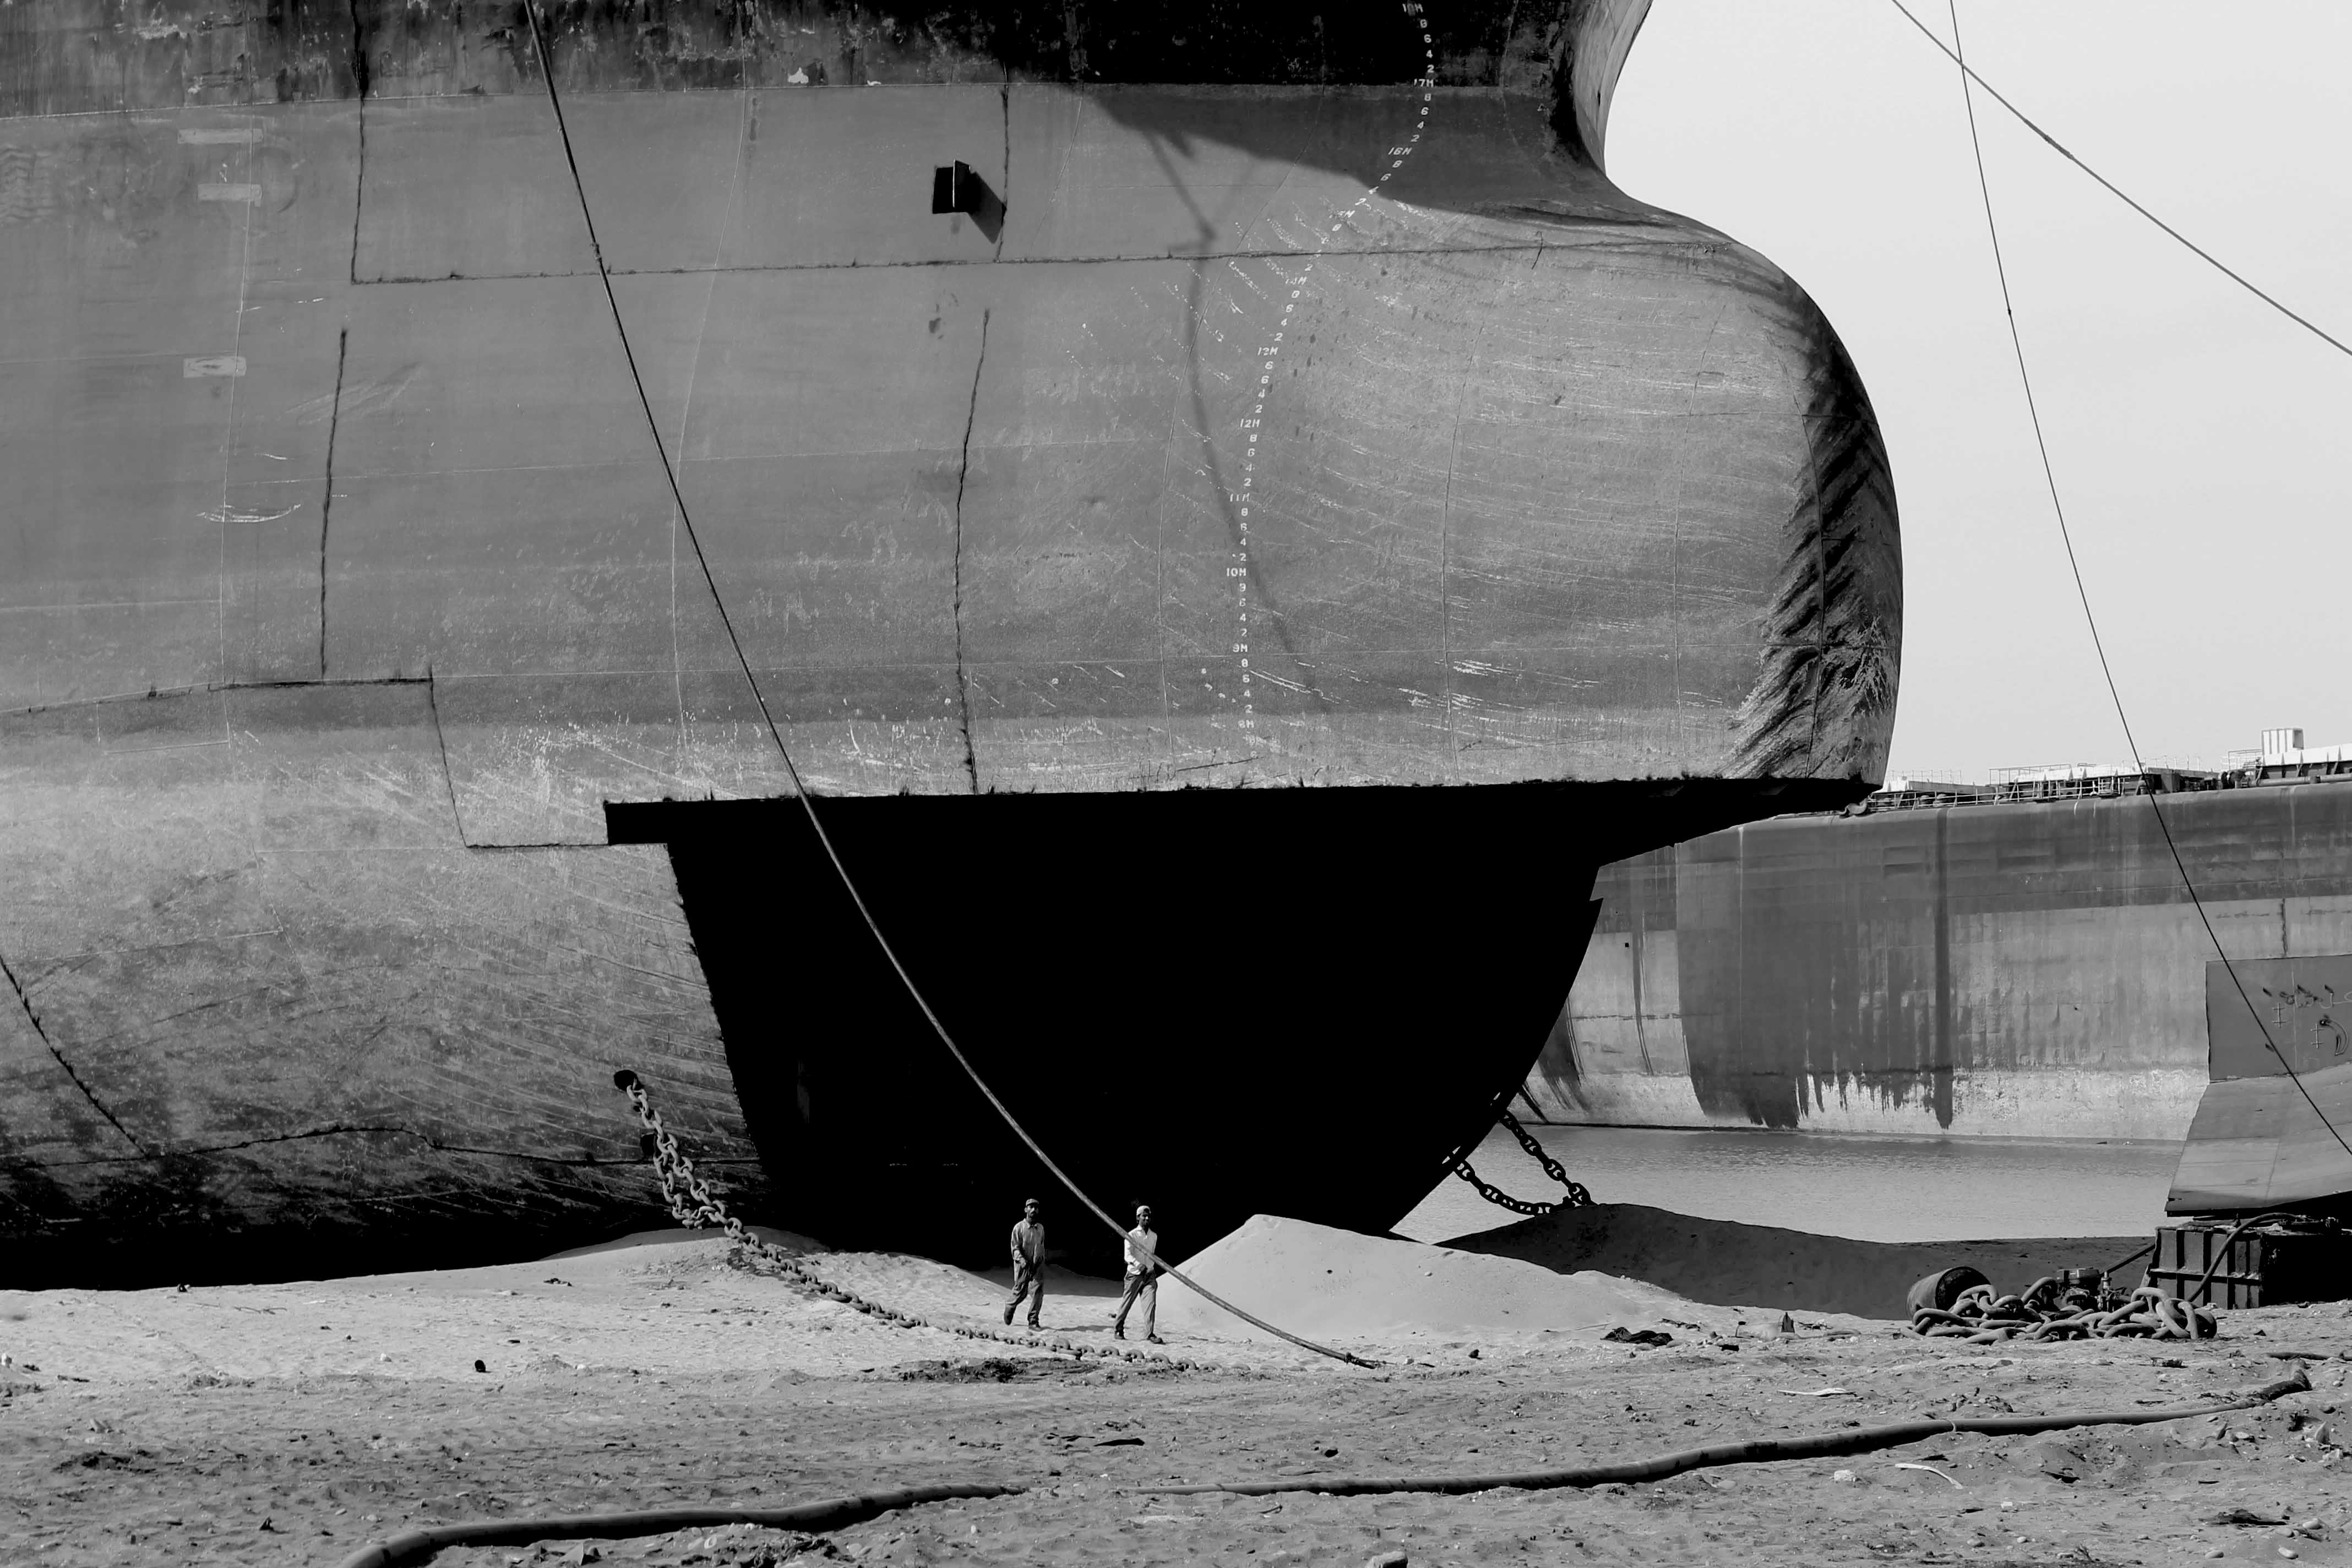 beaching Archives - Page 6 of 7 - NGO Shipbreaking Platform